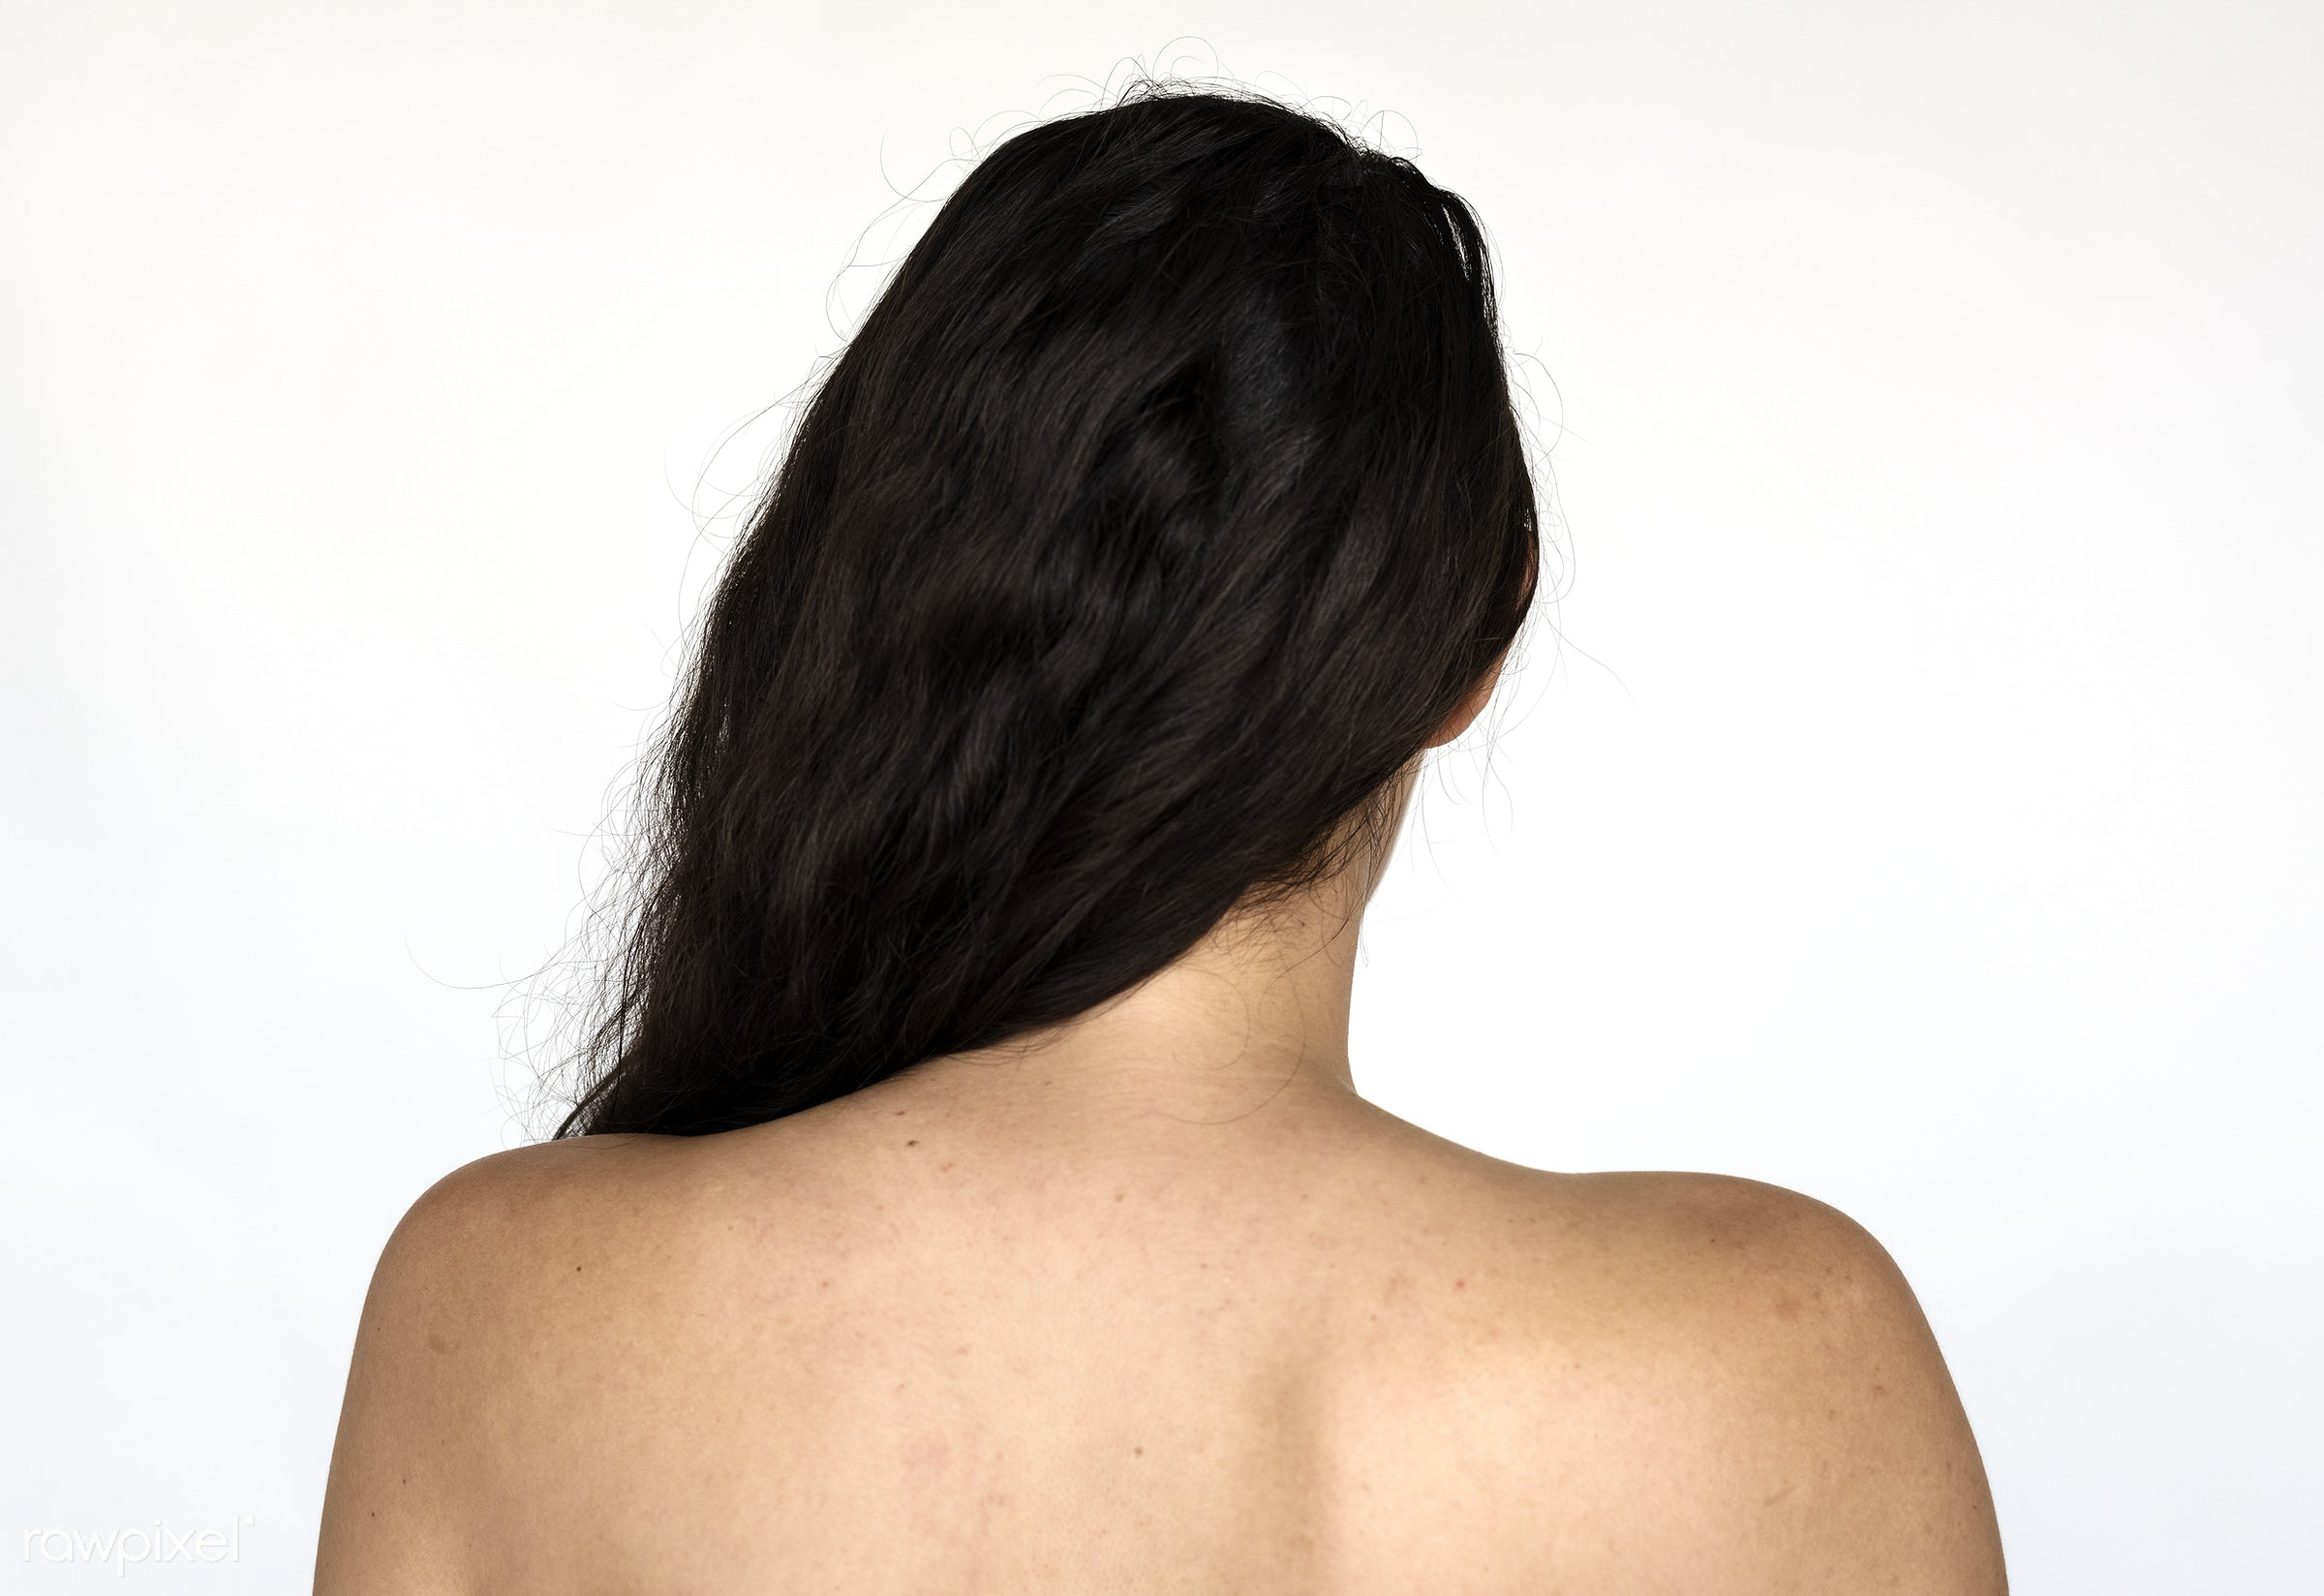 Rear view portrait of a woman - adult, alone, back, closeup, european, expression, face, faces, focus, hair, isolated, look...